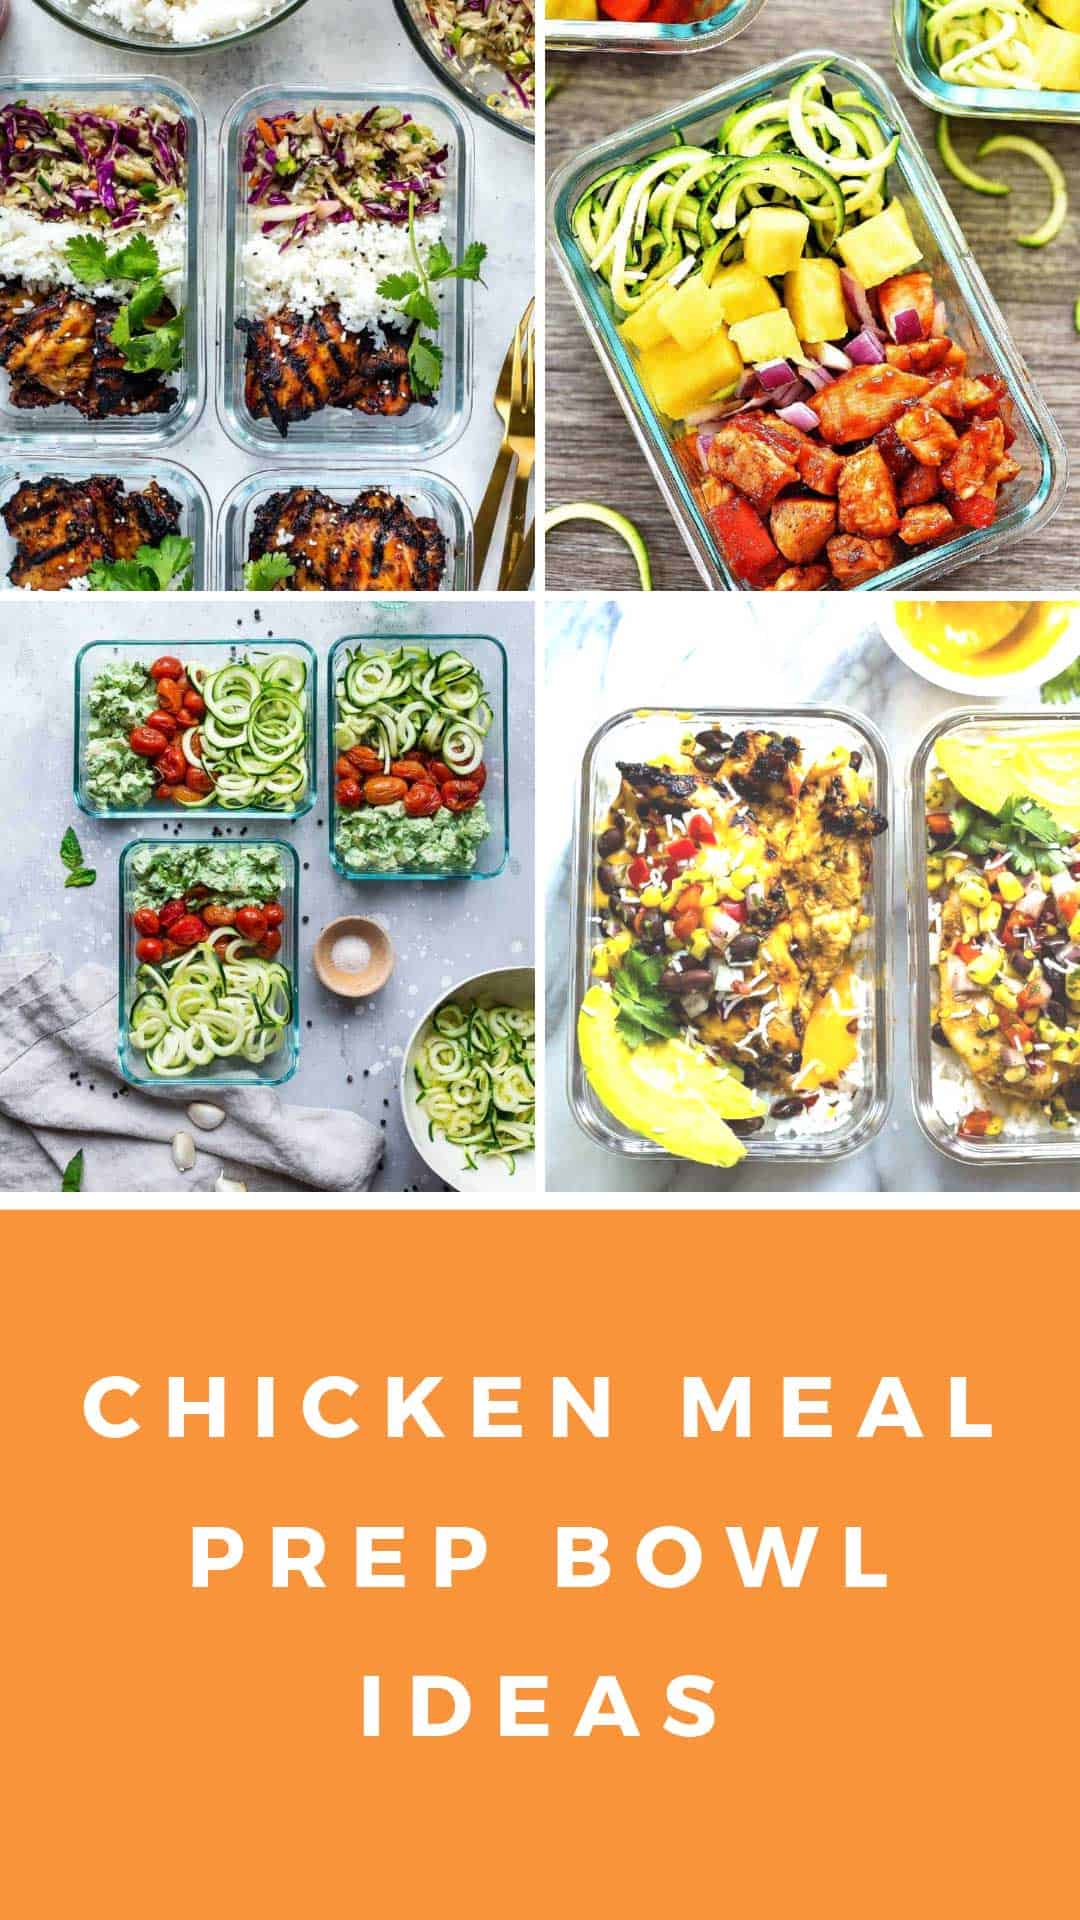 These chicken meal prep bowl recipes are tasty and healthy and will see you through the week without getting bored! #mealprep